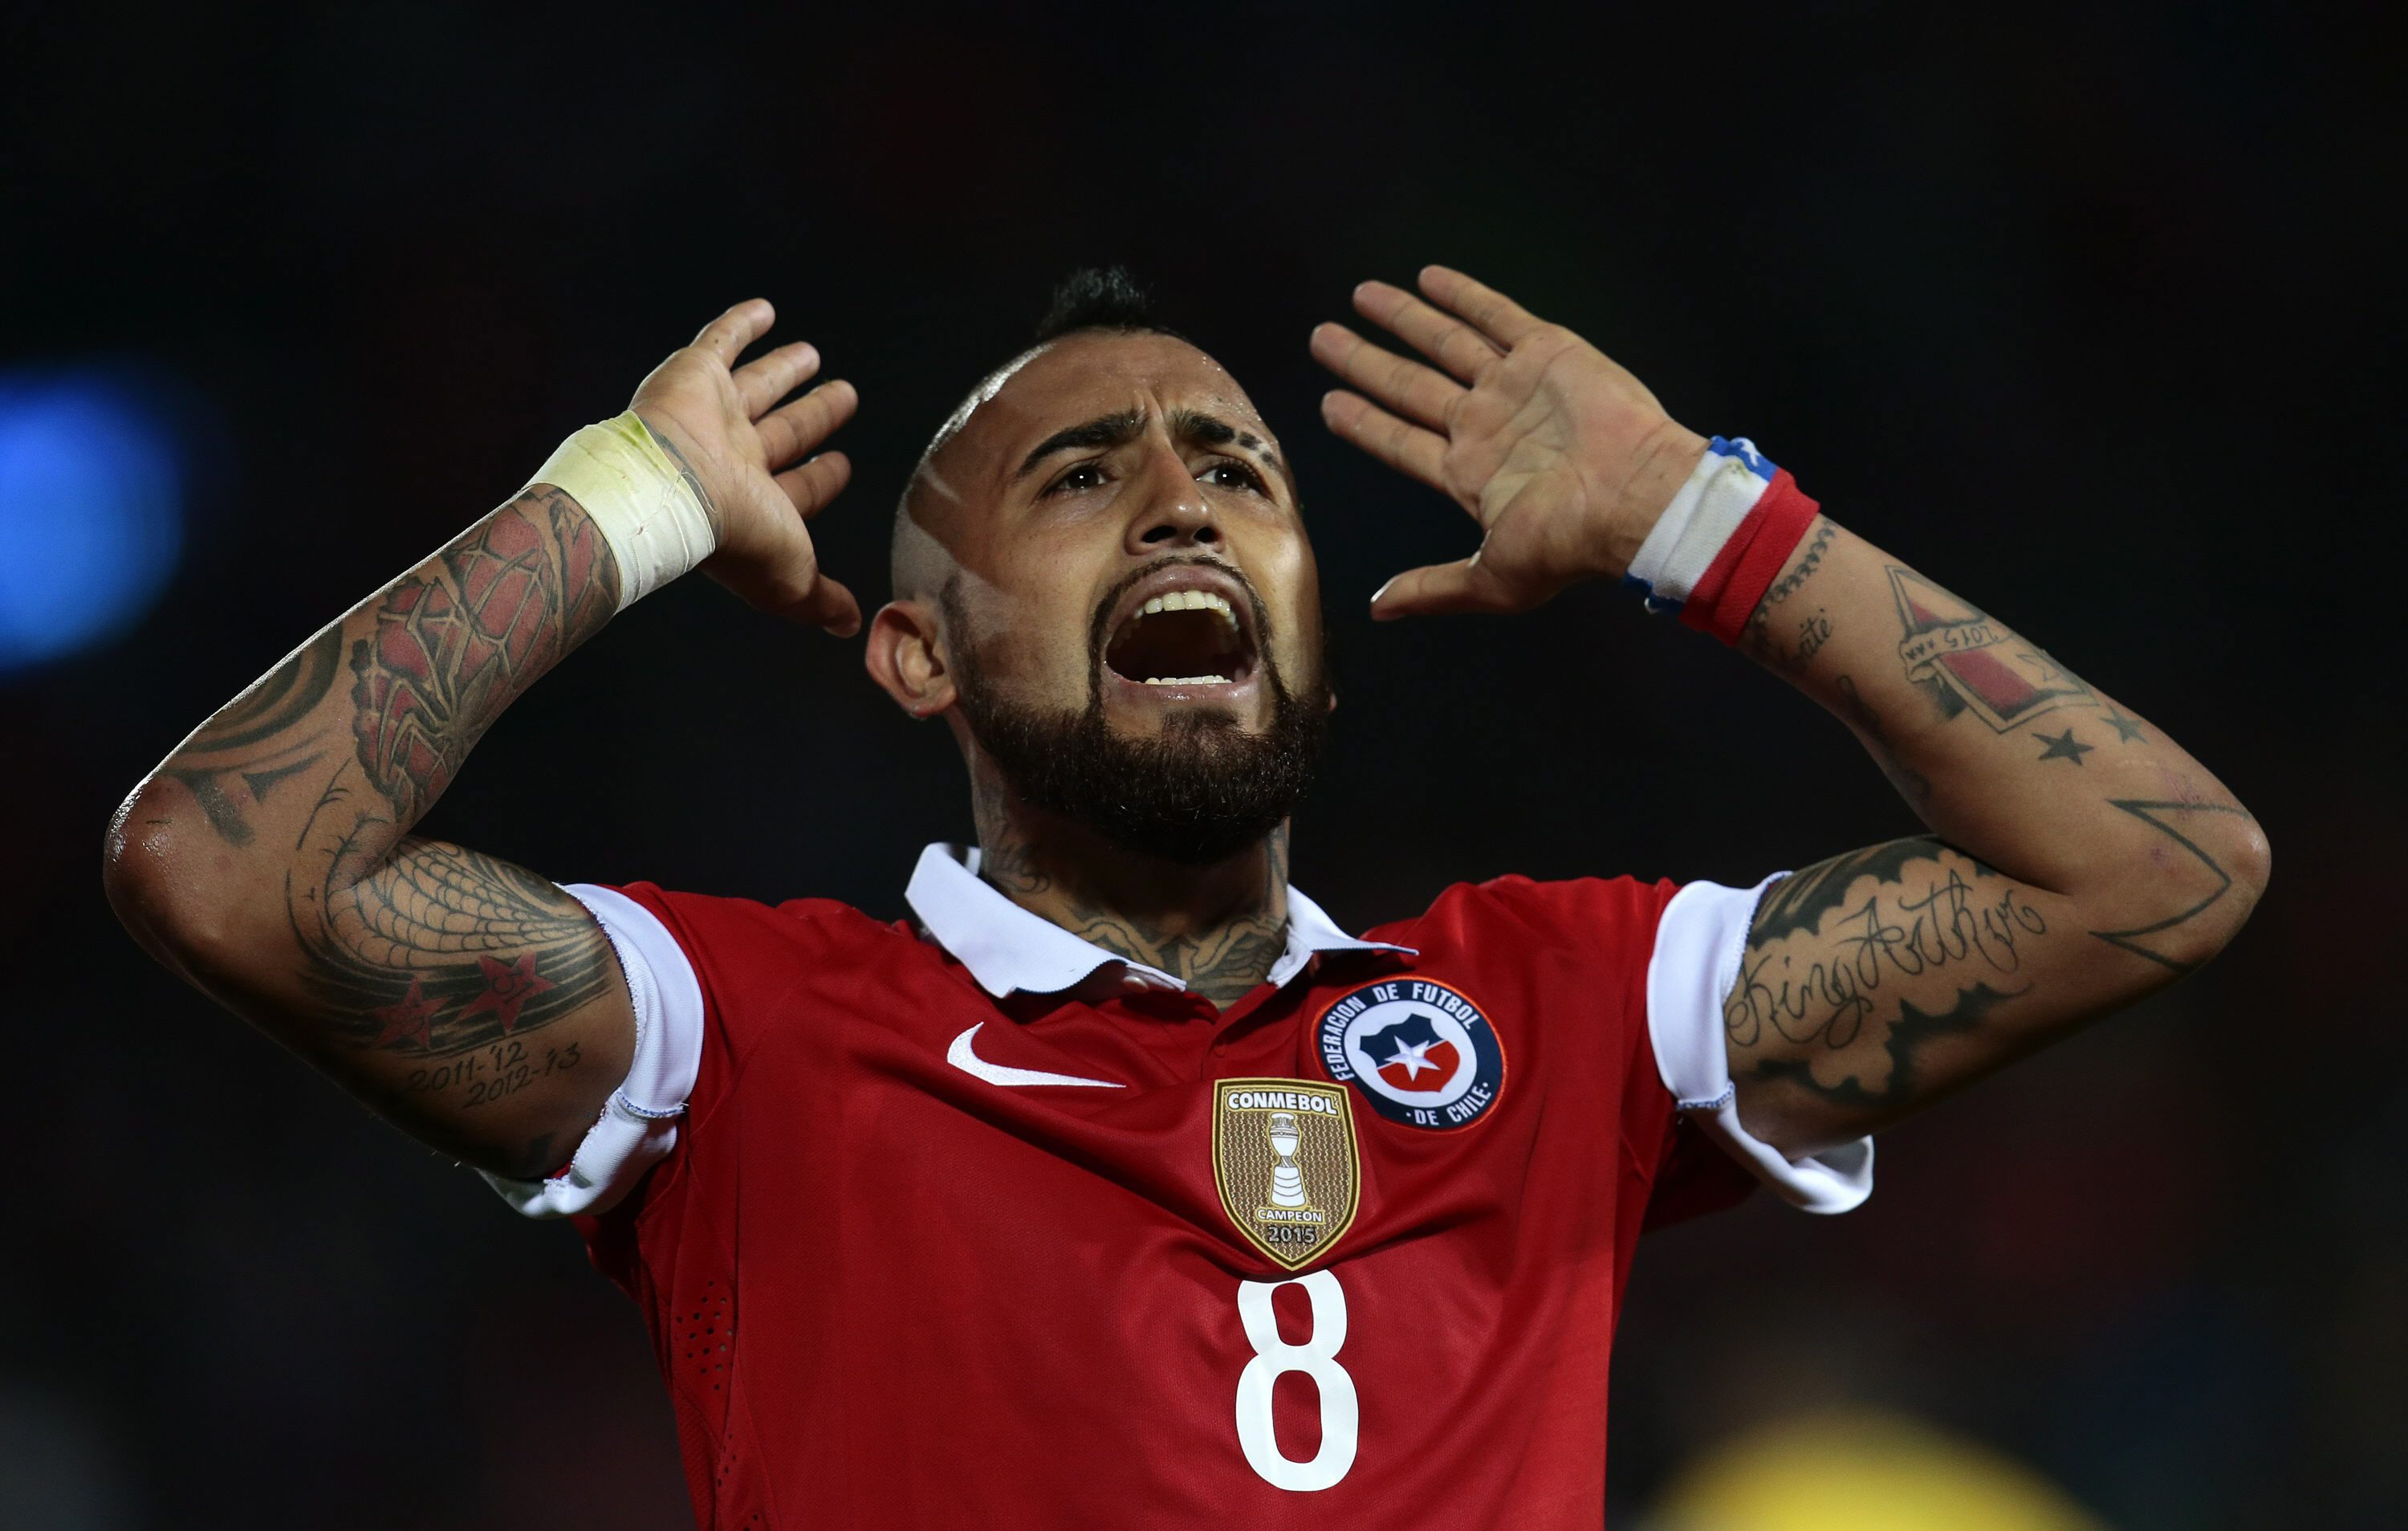 Arturo Vidal will be hoping to star against Japan. (Photo courtesy: AFP/Getty)